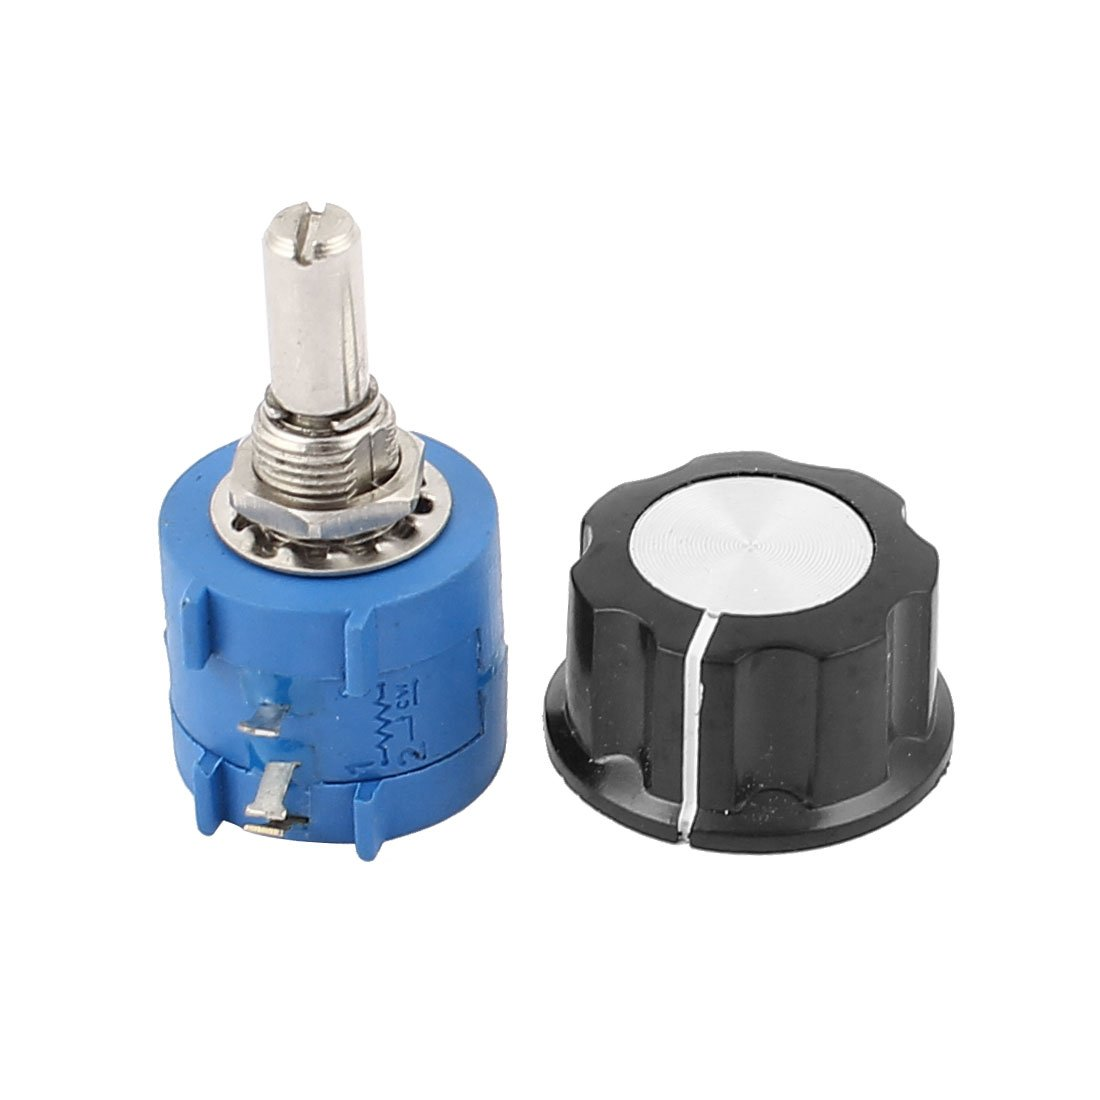 Uxcell a15081800ux0369 10K Ohm 6 mm Shaft Diameter Rotary Wire Wound Potentiometer with Knob